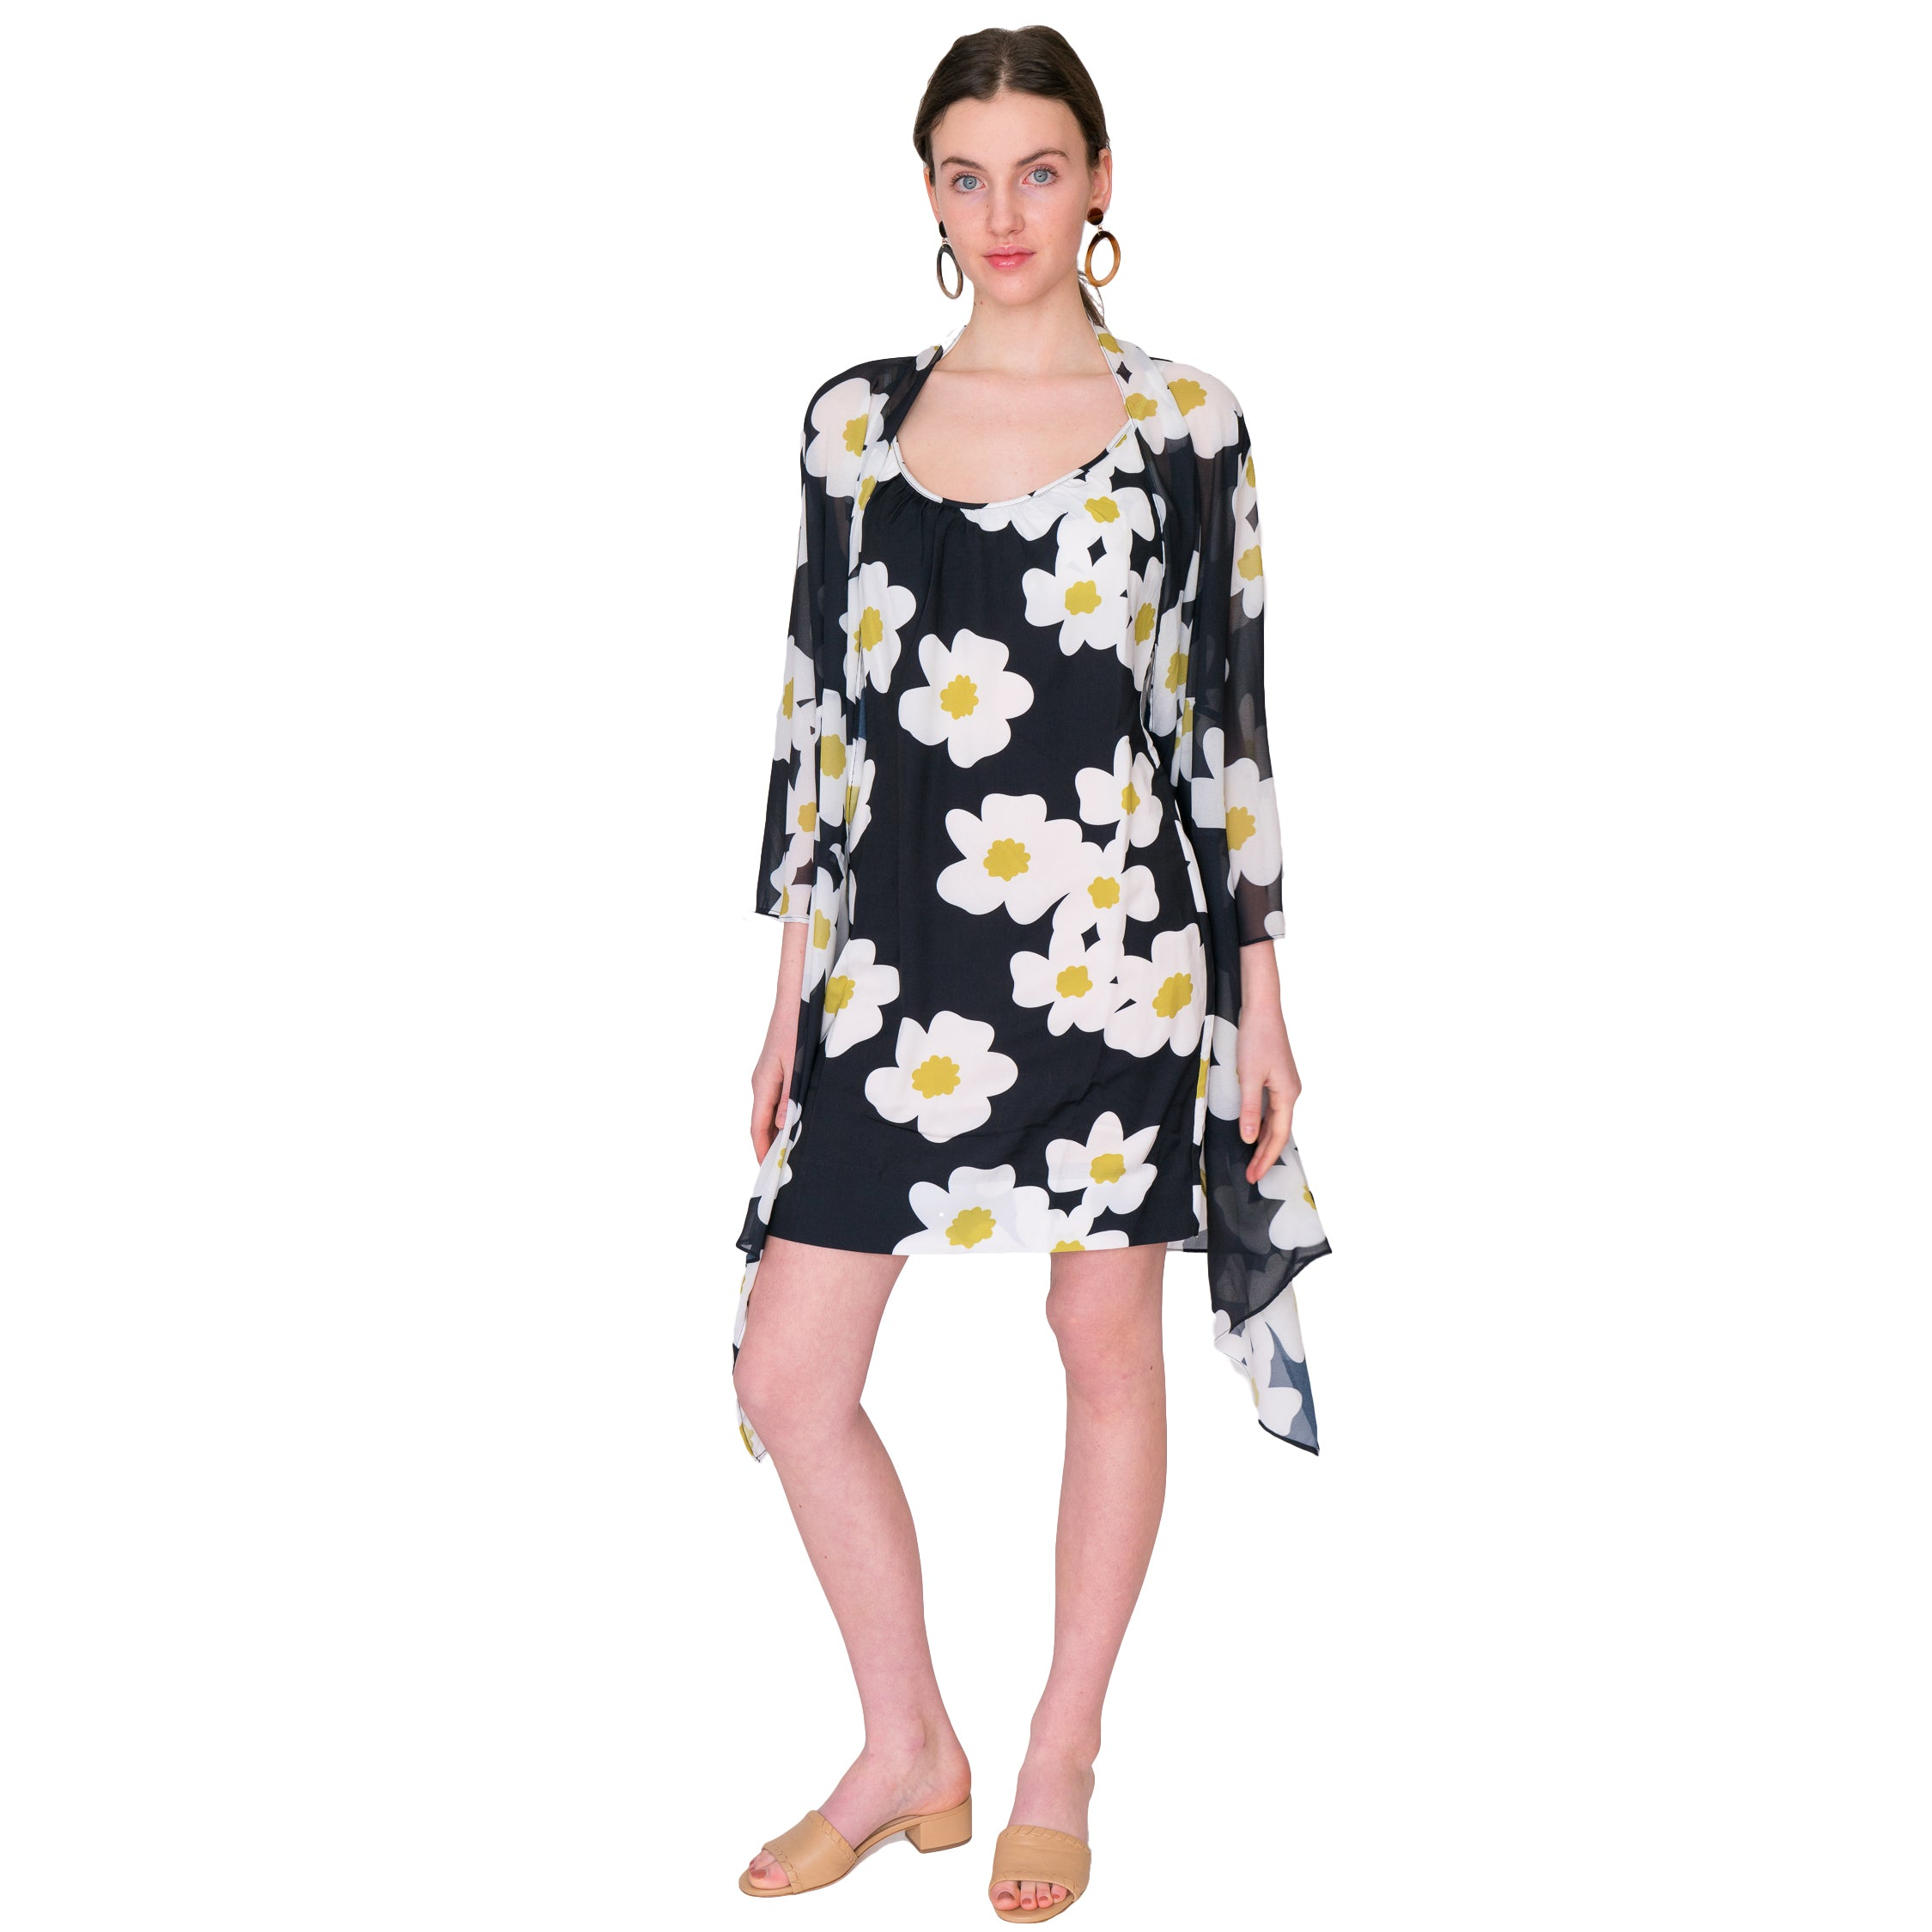 Jill Camisole Tank Dress in Mod Floral - Elizabeth Ackerman New York